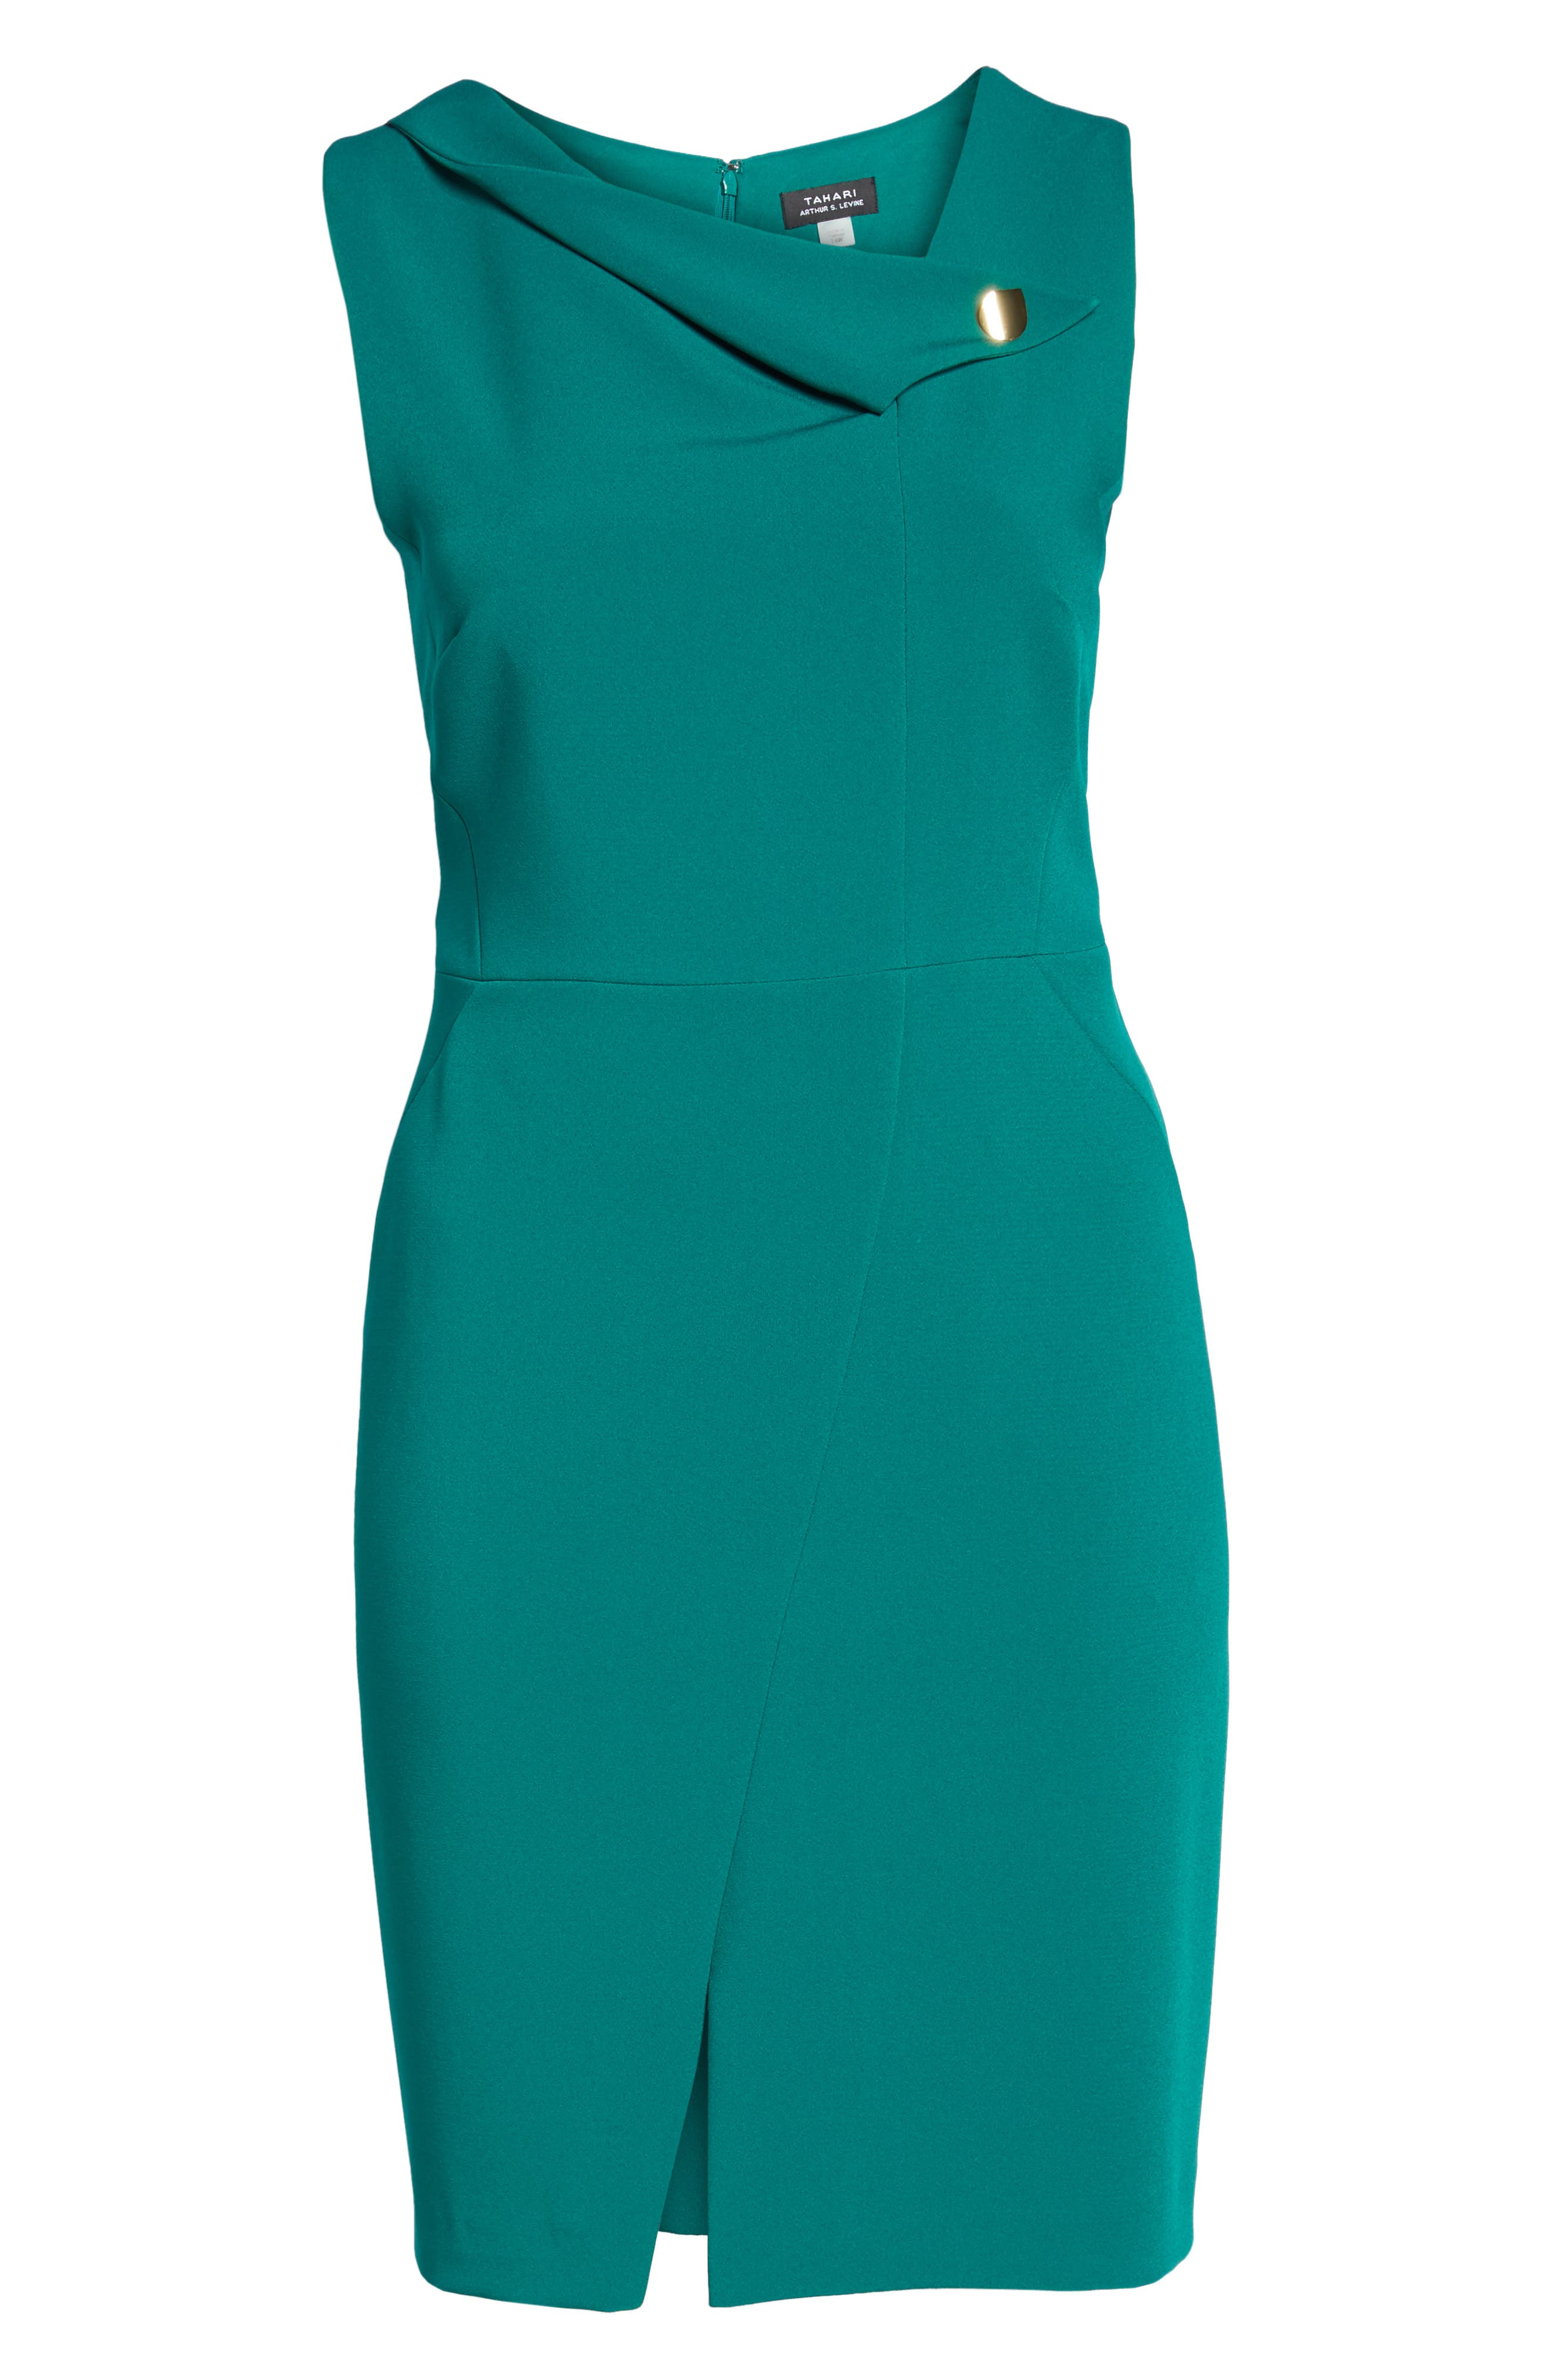 Envelope Neck with Button Sheath Dress,                             Alternate thumbnail 6, color,                             Emerald